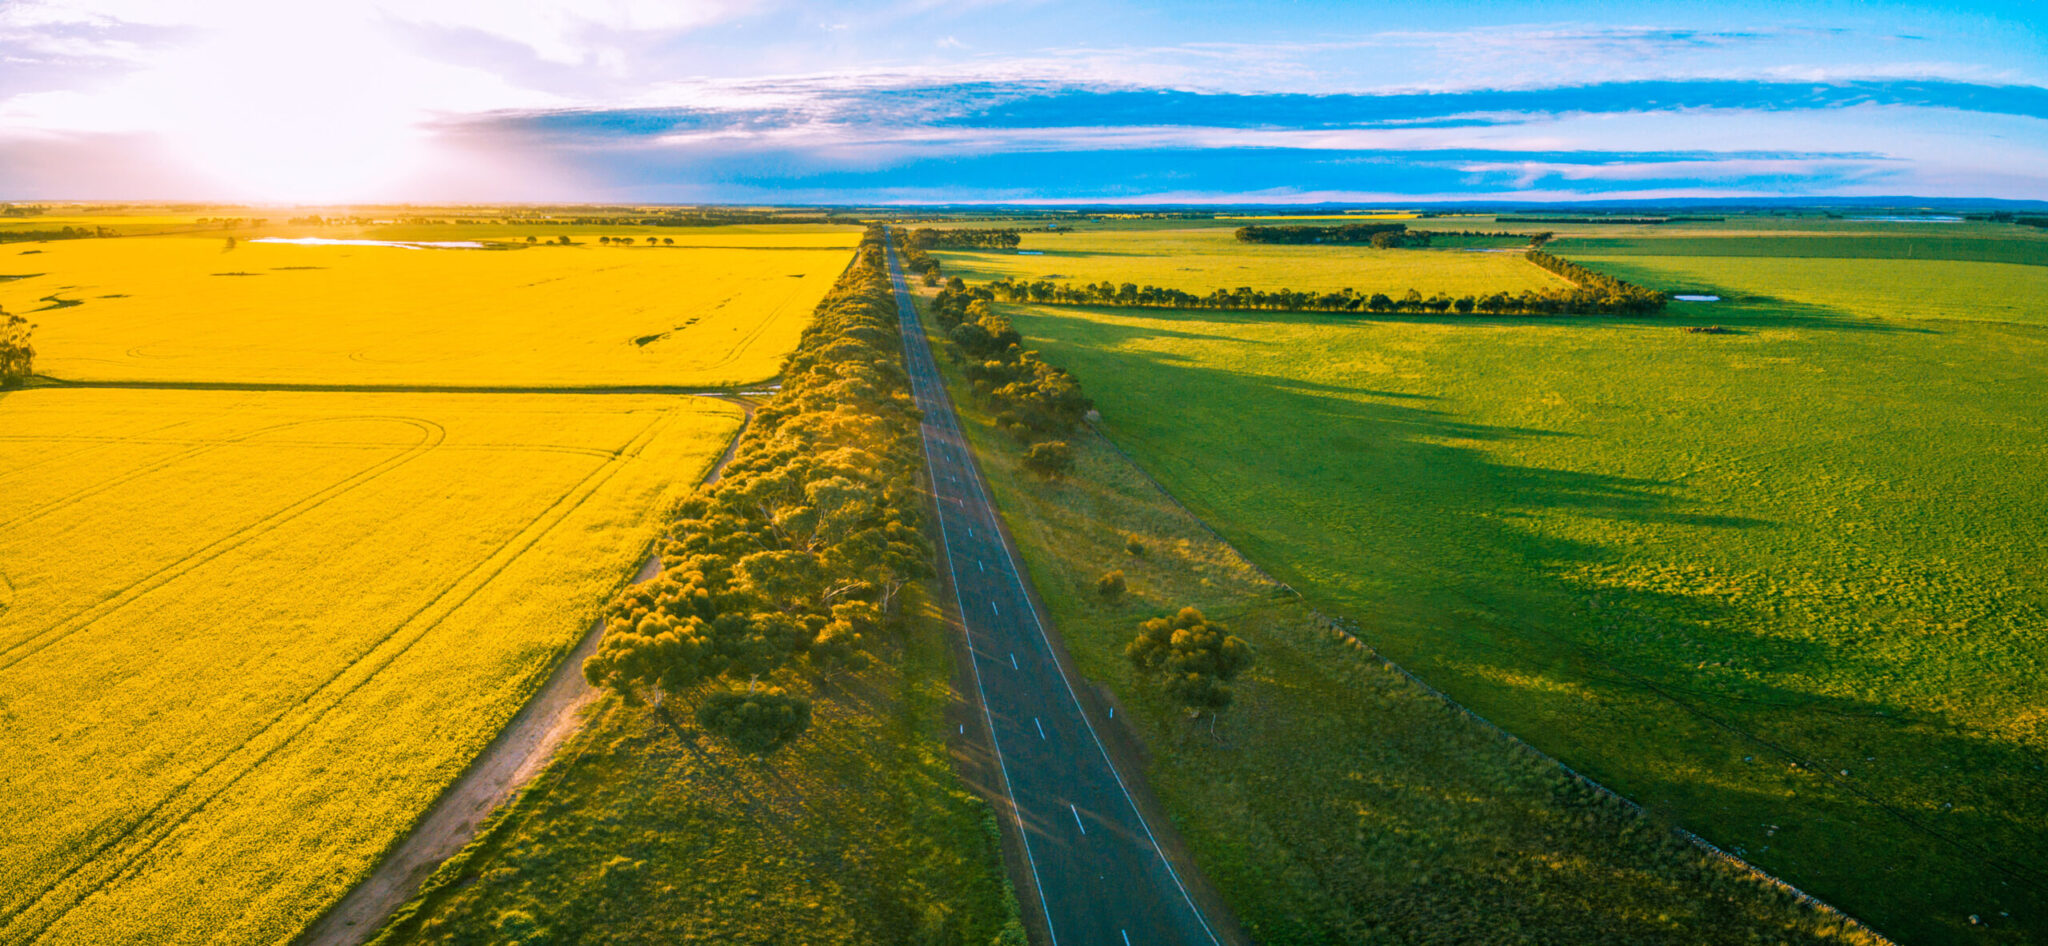 Victorian farmers have had to manage a range of issues around the coronavirus as logistics and supply chains have been disrupted